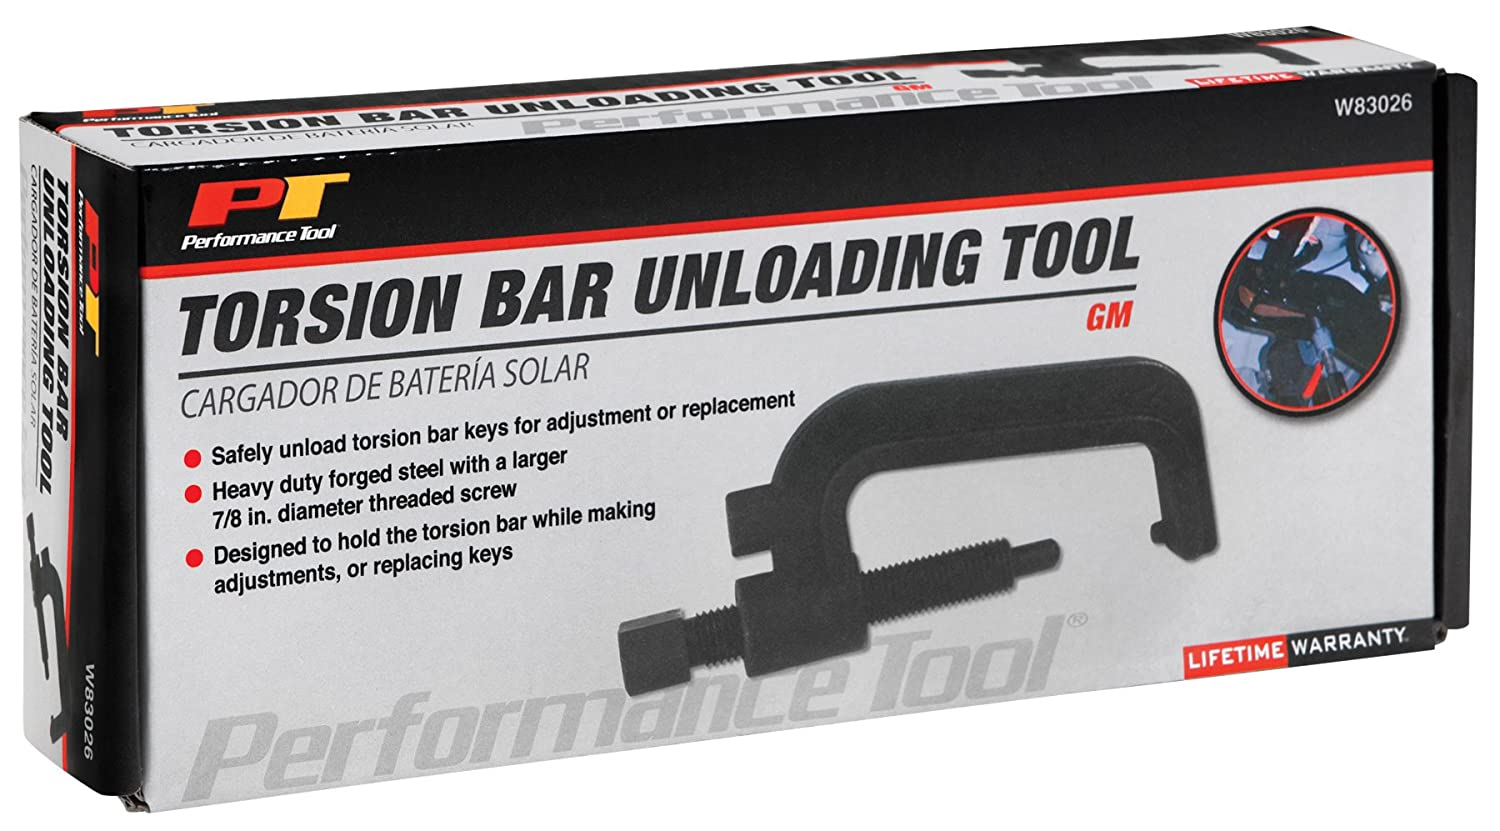 torsion bar removal tool. amazon.com: performance tool w83026 gm torsion bar unloading tool: automotive removal